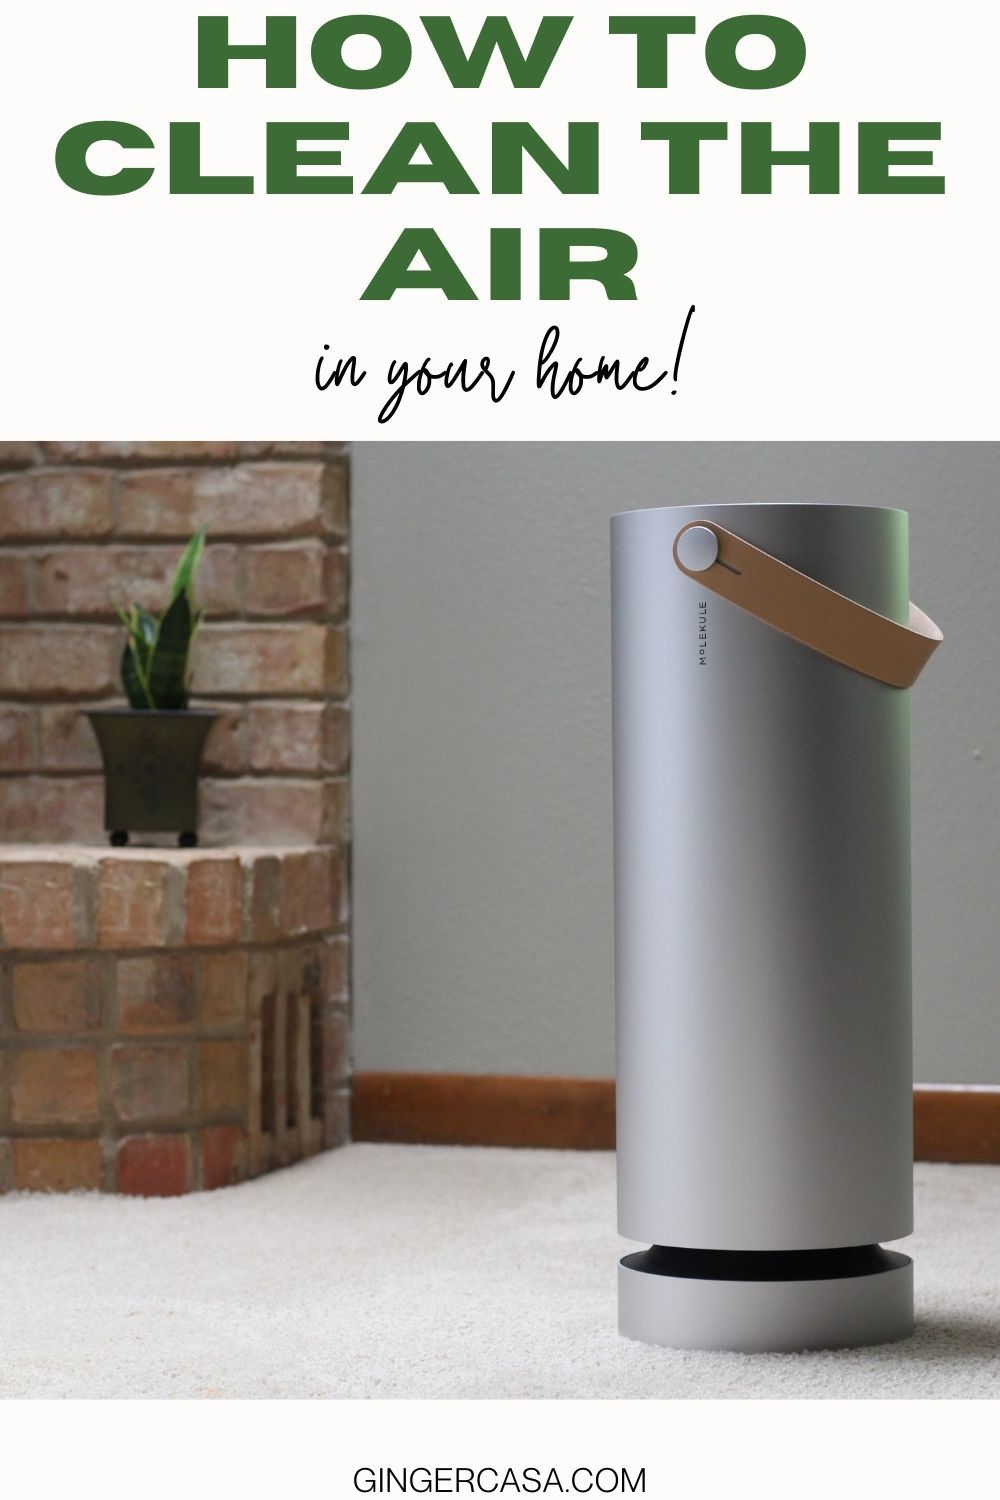 How to clean the air in your home in 2021 cleaning